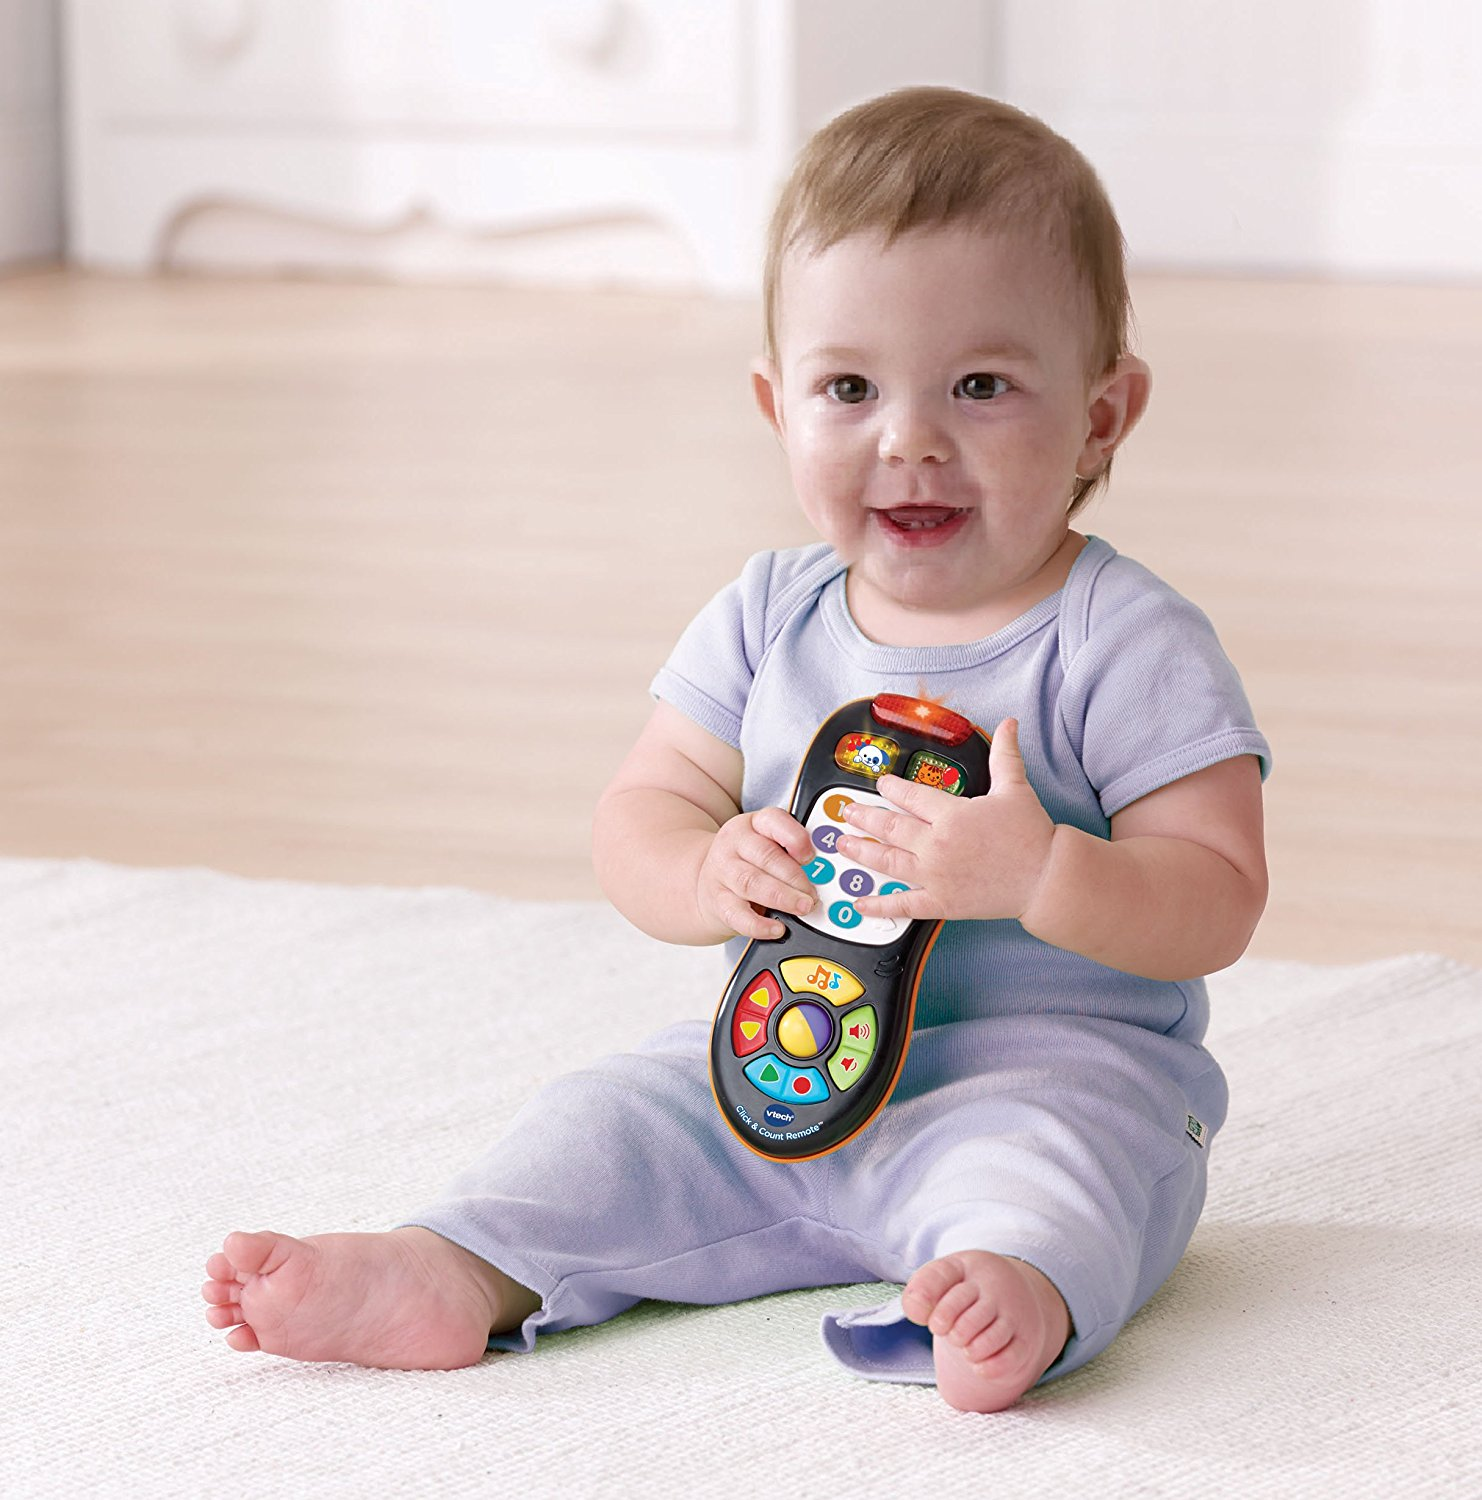 VTech Click and Count Remote with 45 sing-along songs and 9 pretend channels New! by